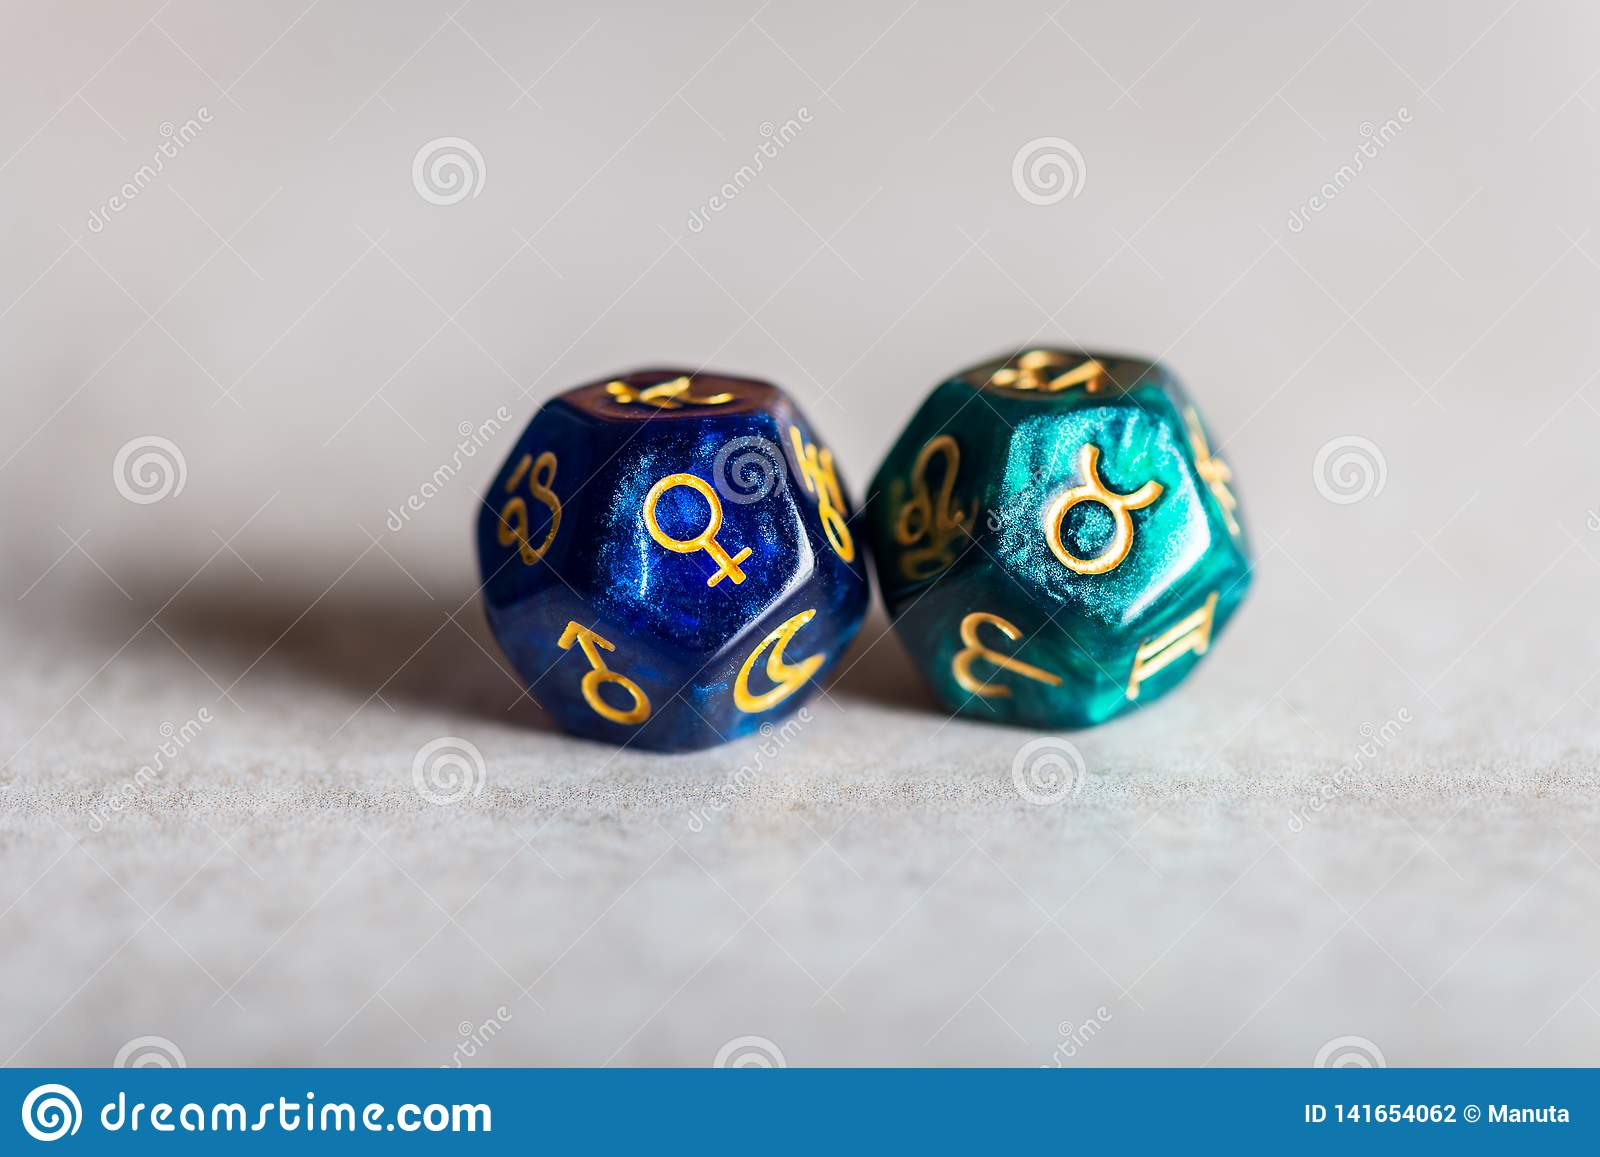 Astrology Dice with zodiac symbol of Taurus and its ruling planet Venus